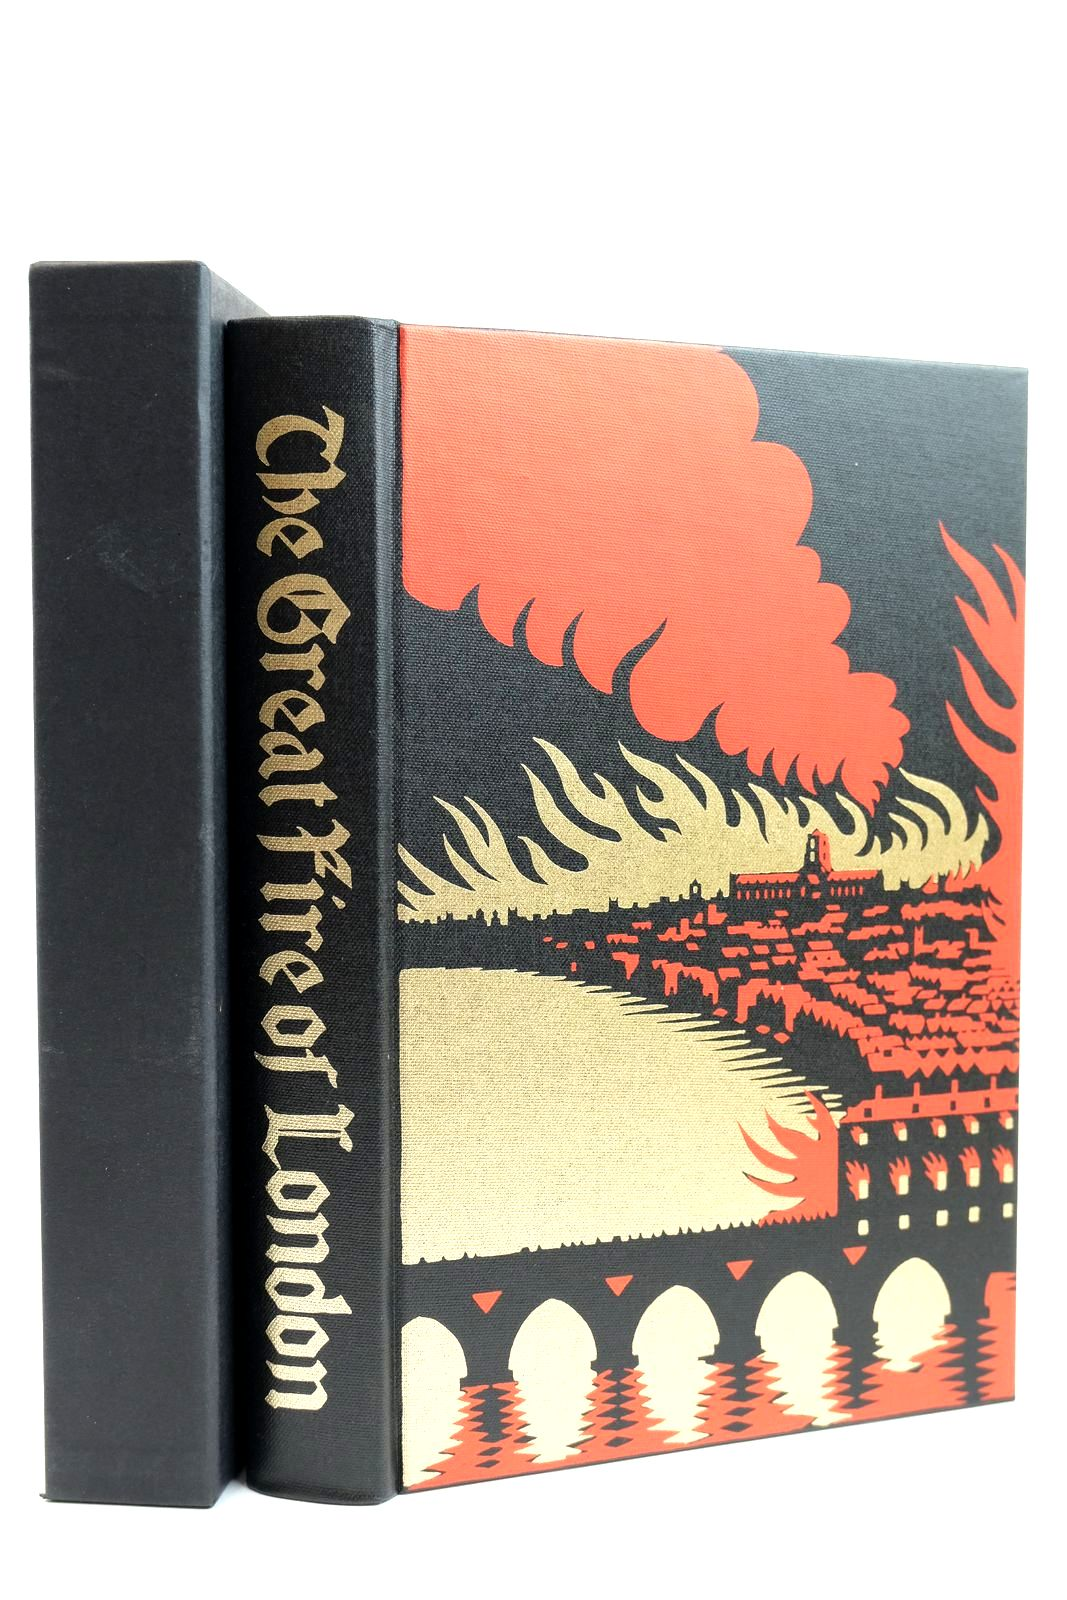 Photo of THE GREAT FIRE OF LONDON IN 1666 written by Bell, Walter George published by Folio Society (STOCK CODE: 2131804)  for sale by Stella & Rose's Books